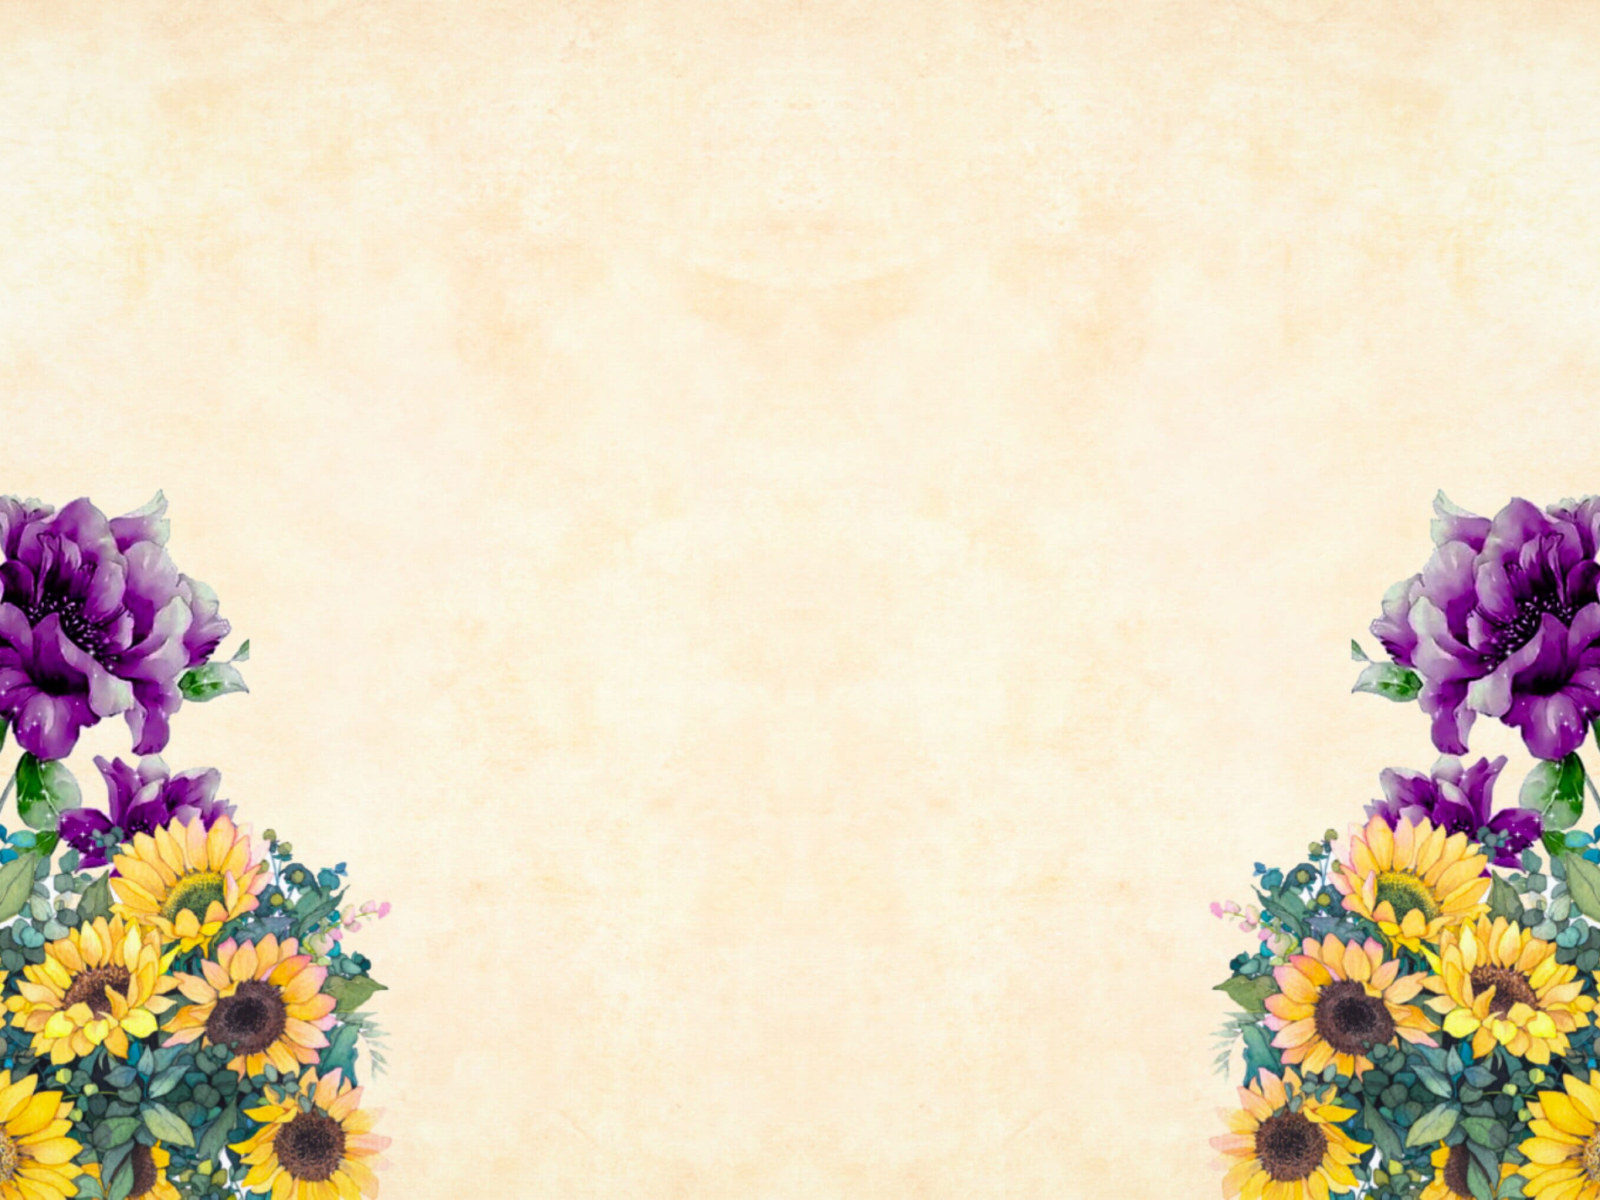 vintage wallpaper purple and yellow flowers on corners of light wallpaper watercolor wallpaper for you the best wallpaper for desktop mobile vintage wallpaper purple and yellow